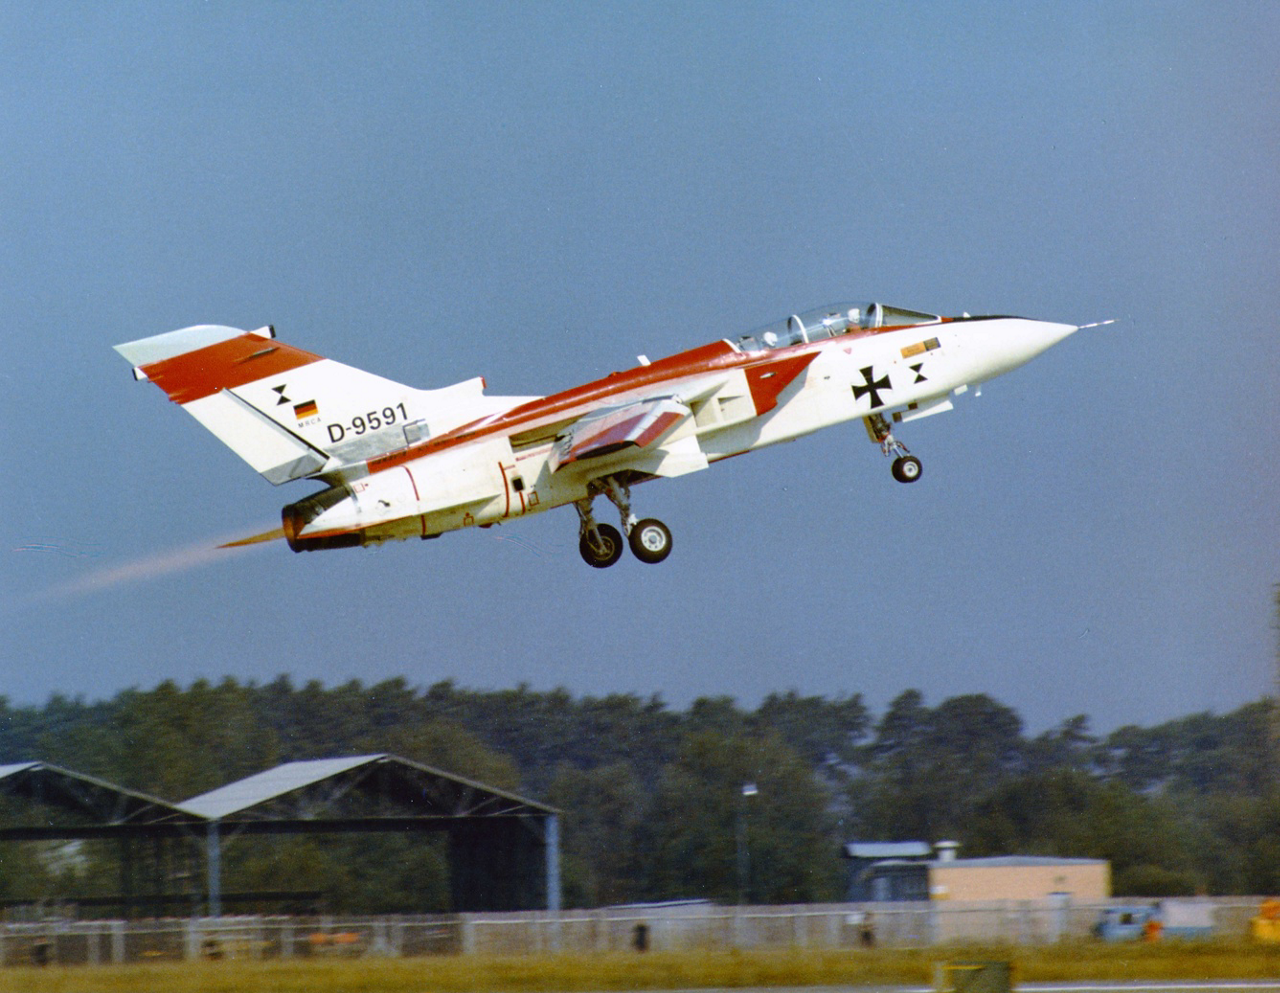 The MRCA prototype, later known as the Tornado, takes off for its 1974 maiden flight.